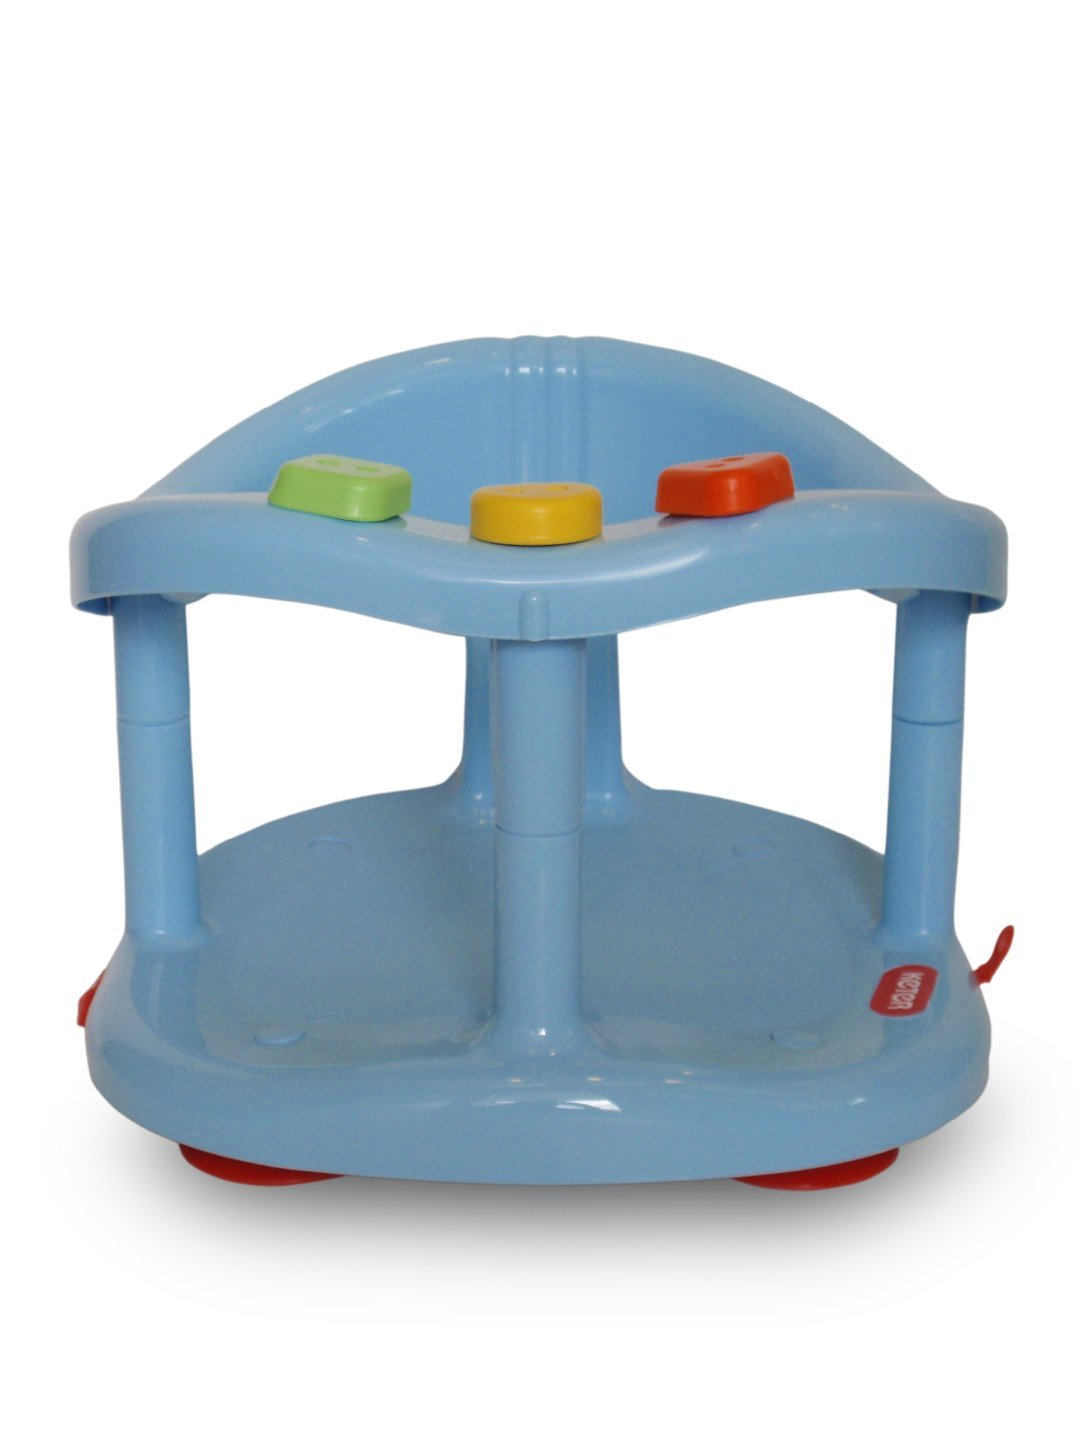 Baby Bath Tub Ring Seat New By KETER - Blue: Amazon.ca: Baby